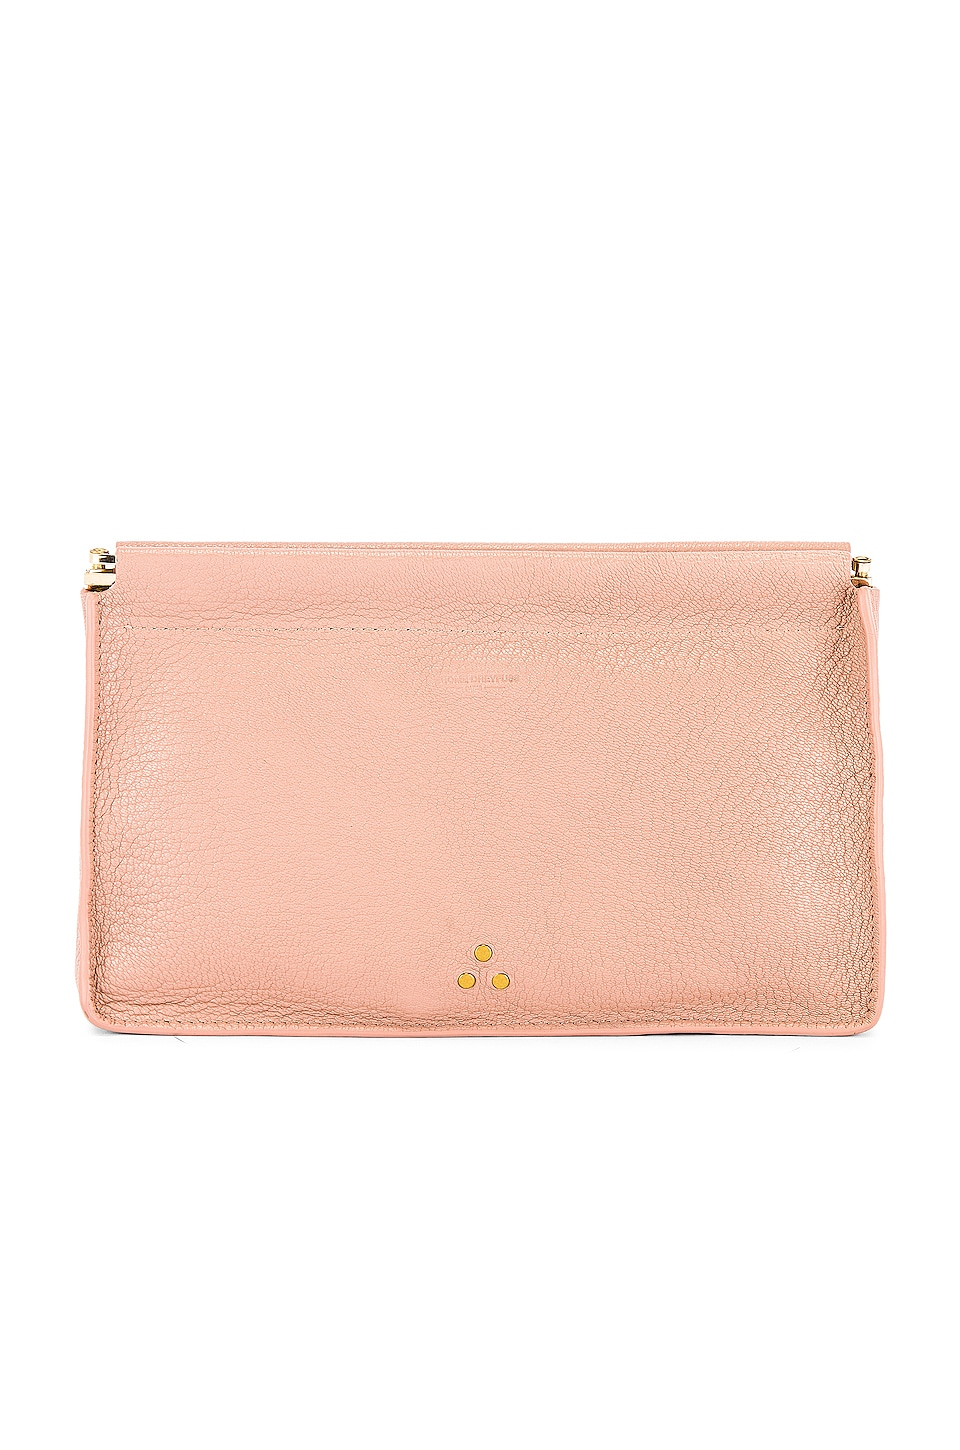 Jerome Dreyfuss Clic Clac Large Clutch in Rose